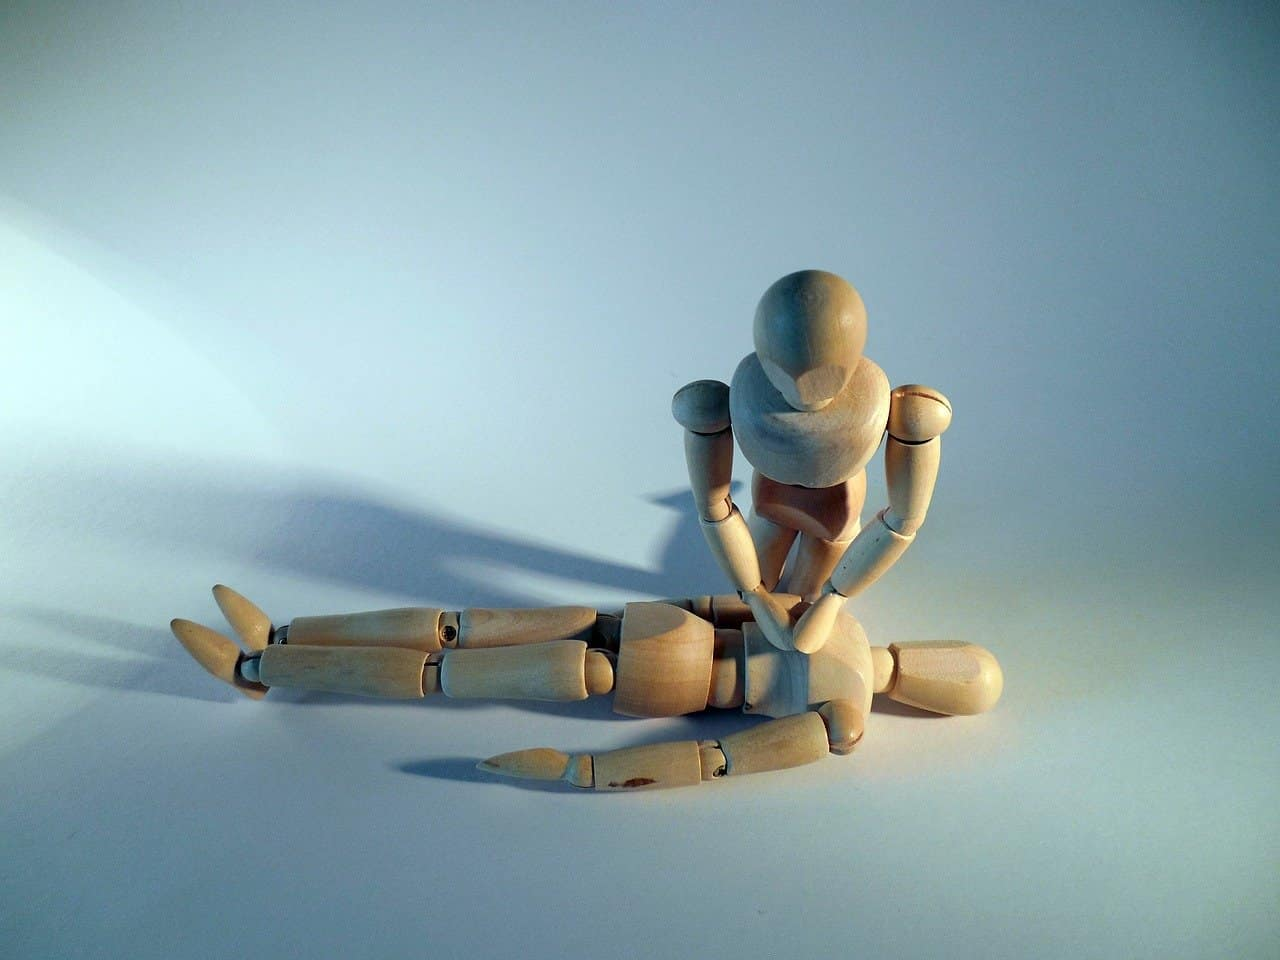 To perform CPR correctly, place one hand on top of the other with the heel of the bottom hand on the center of the chest.